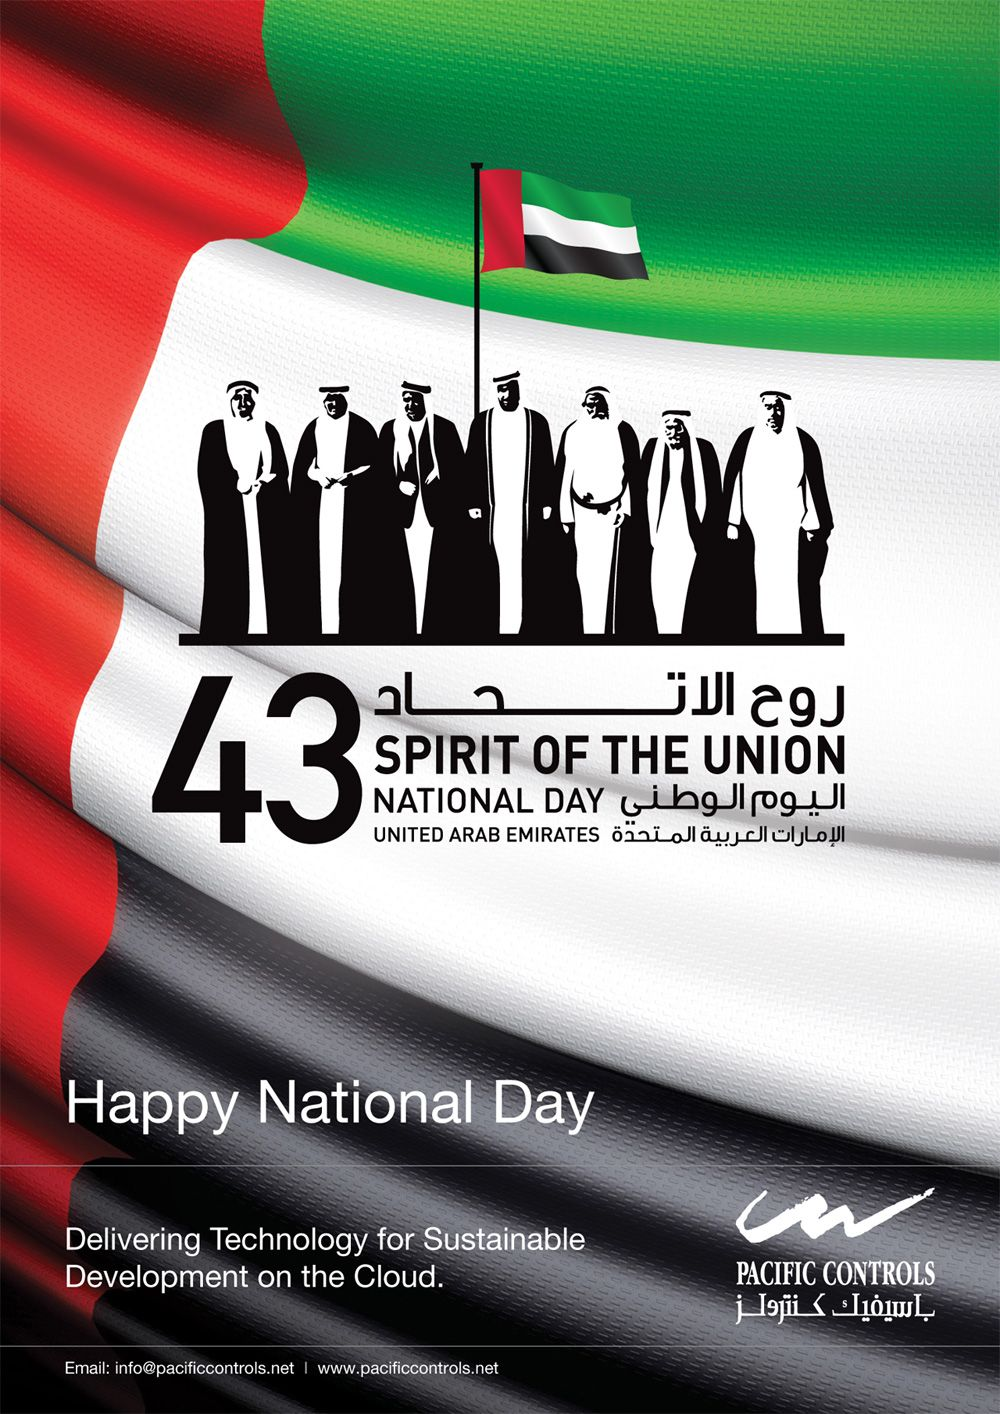 Pacific Controls joins you in celebrating the Spirit of the Union - Happy National Day